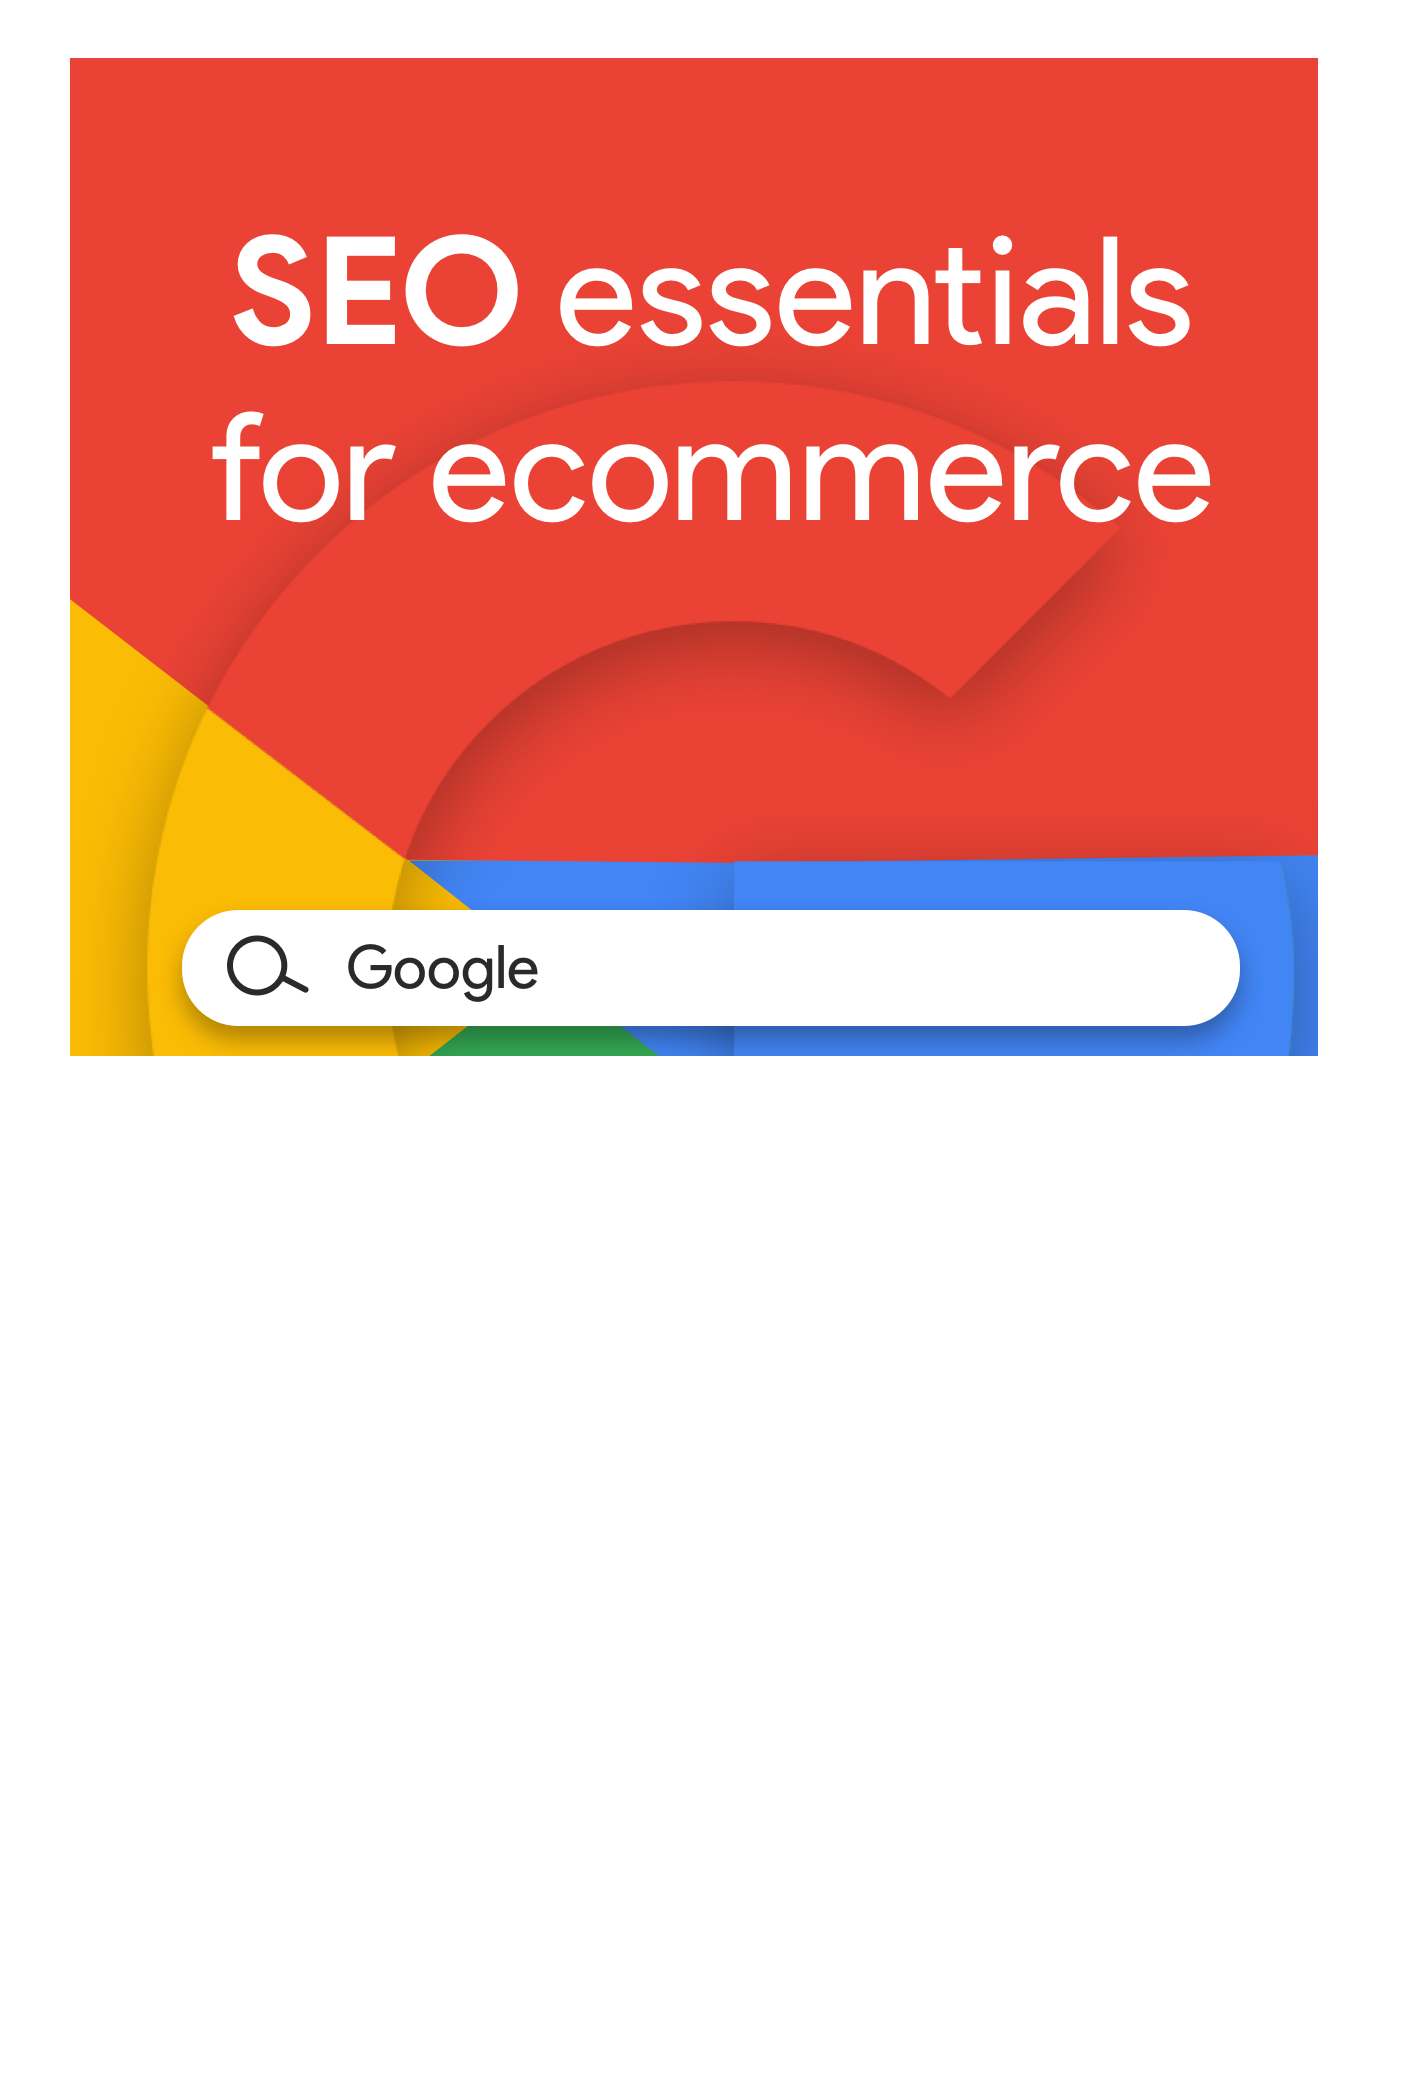 <http://web.shoplo.io/download/seo-essentials-for-ecommerce>  SEO Essentials for Ecommerce  Rank higher in search engines Download ebook <http://web.shoplo.io/download/seo-essentials-for-ecommerce>